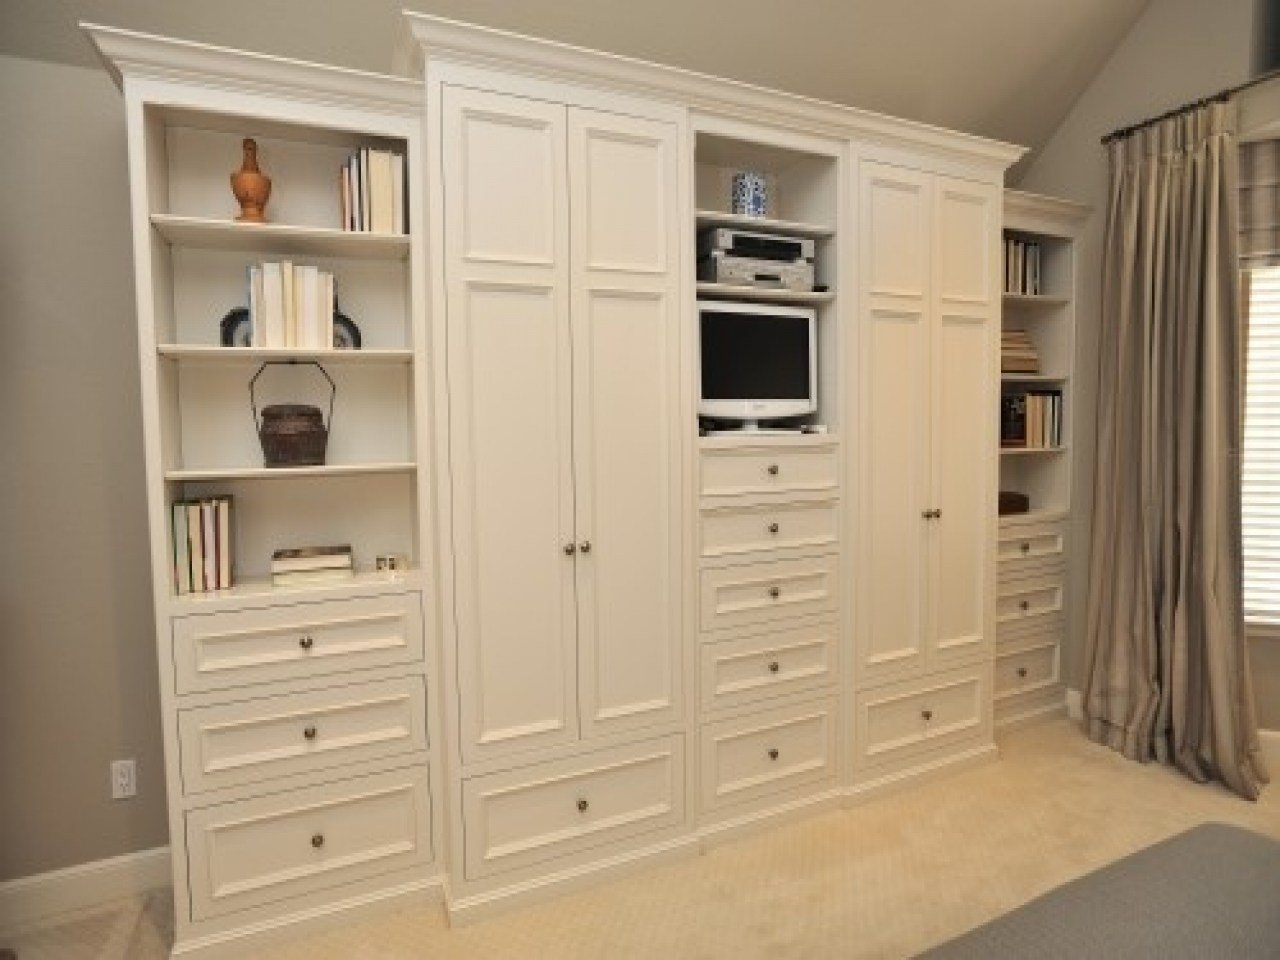 Best Cabinets For Bedrooms Bedroom Wall Units With Drawers With Pictures